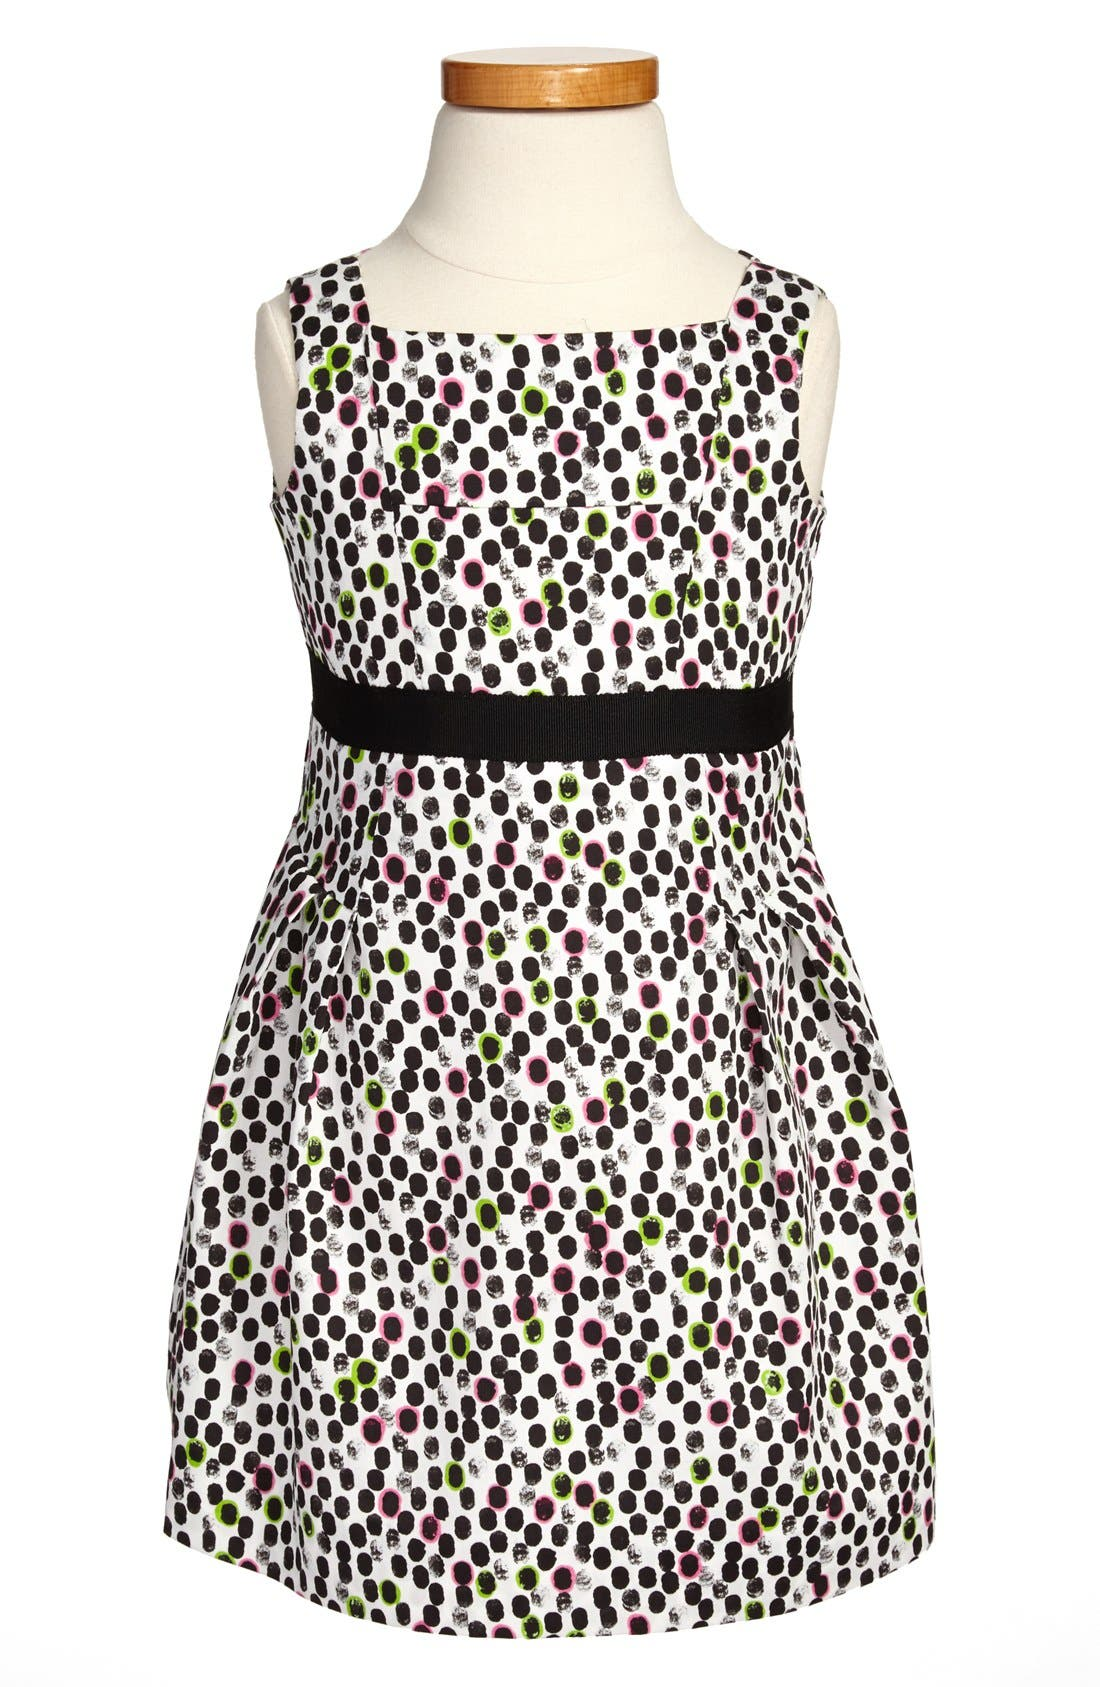 Alternate Image 1 Selected - Milly Minis Ocelot Print Shift Dress (Toddler Girls, Little Girls & Big Girls)